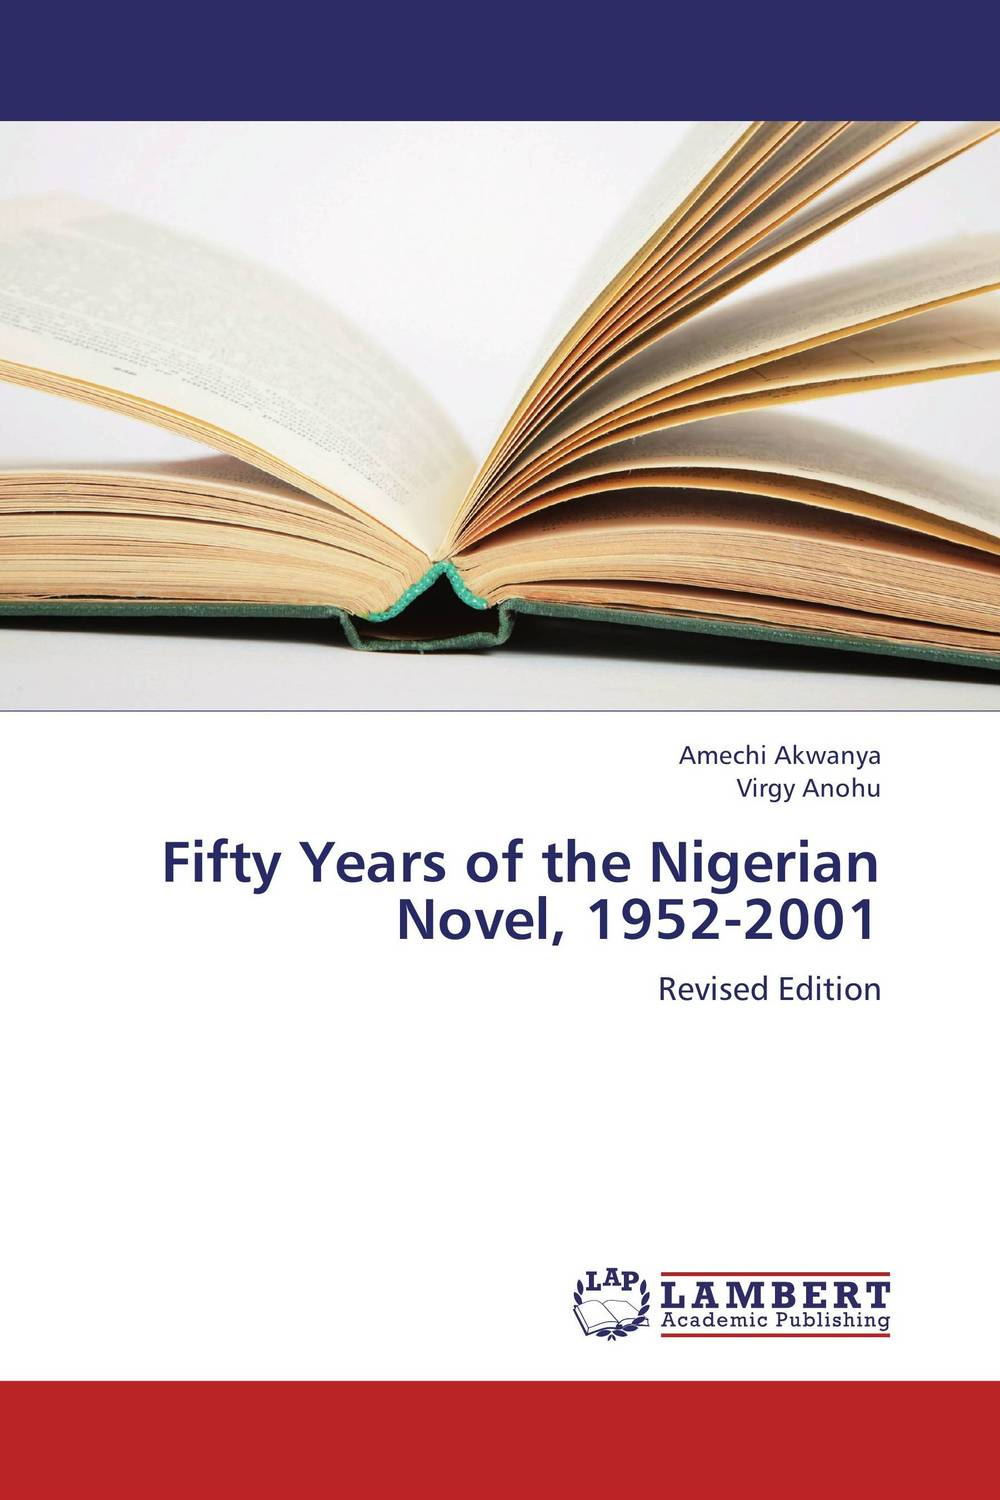 Fifty Years of the Nigerian Novel, 1952-2001 the lonely polygamist – a novel